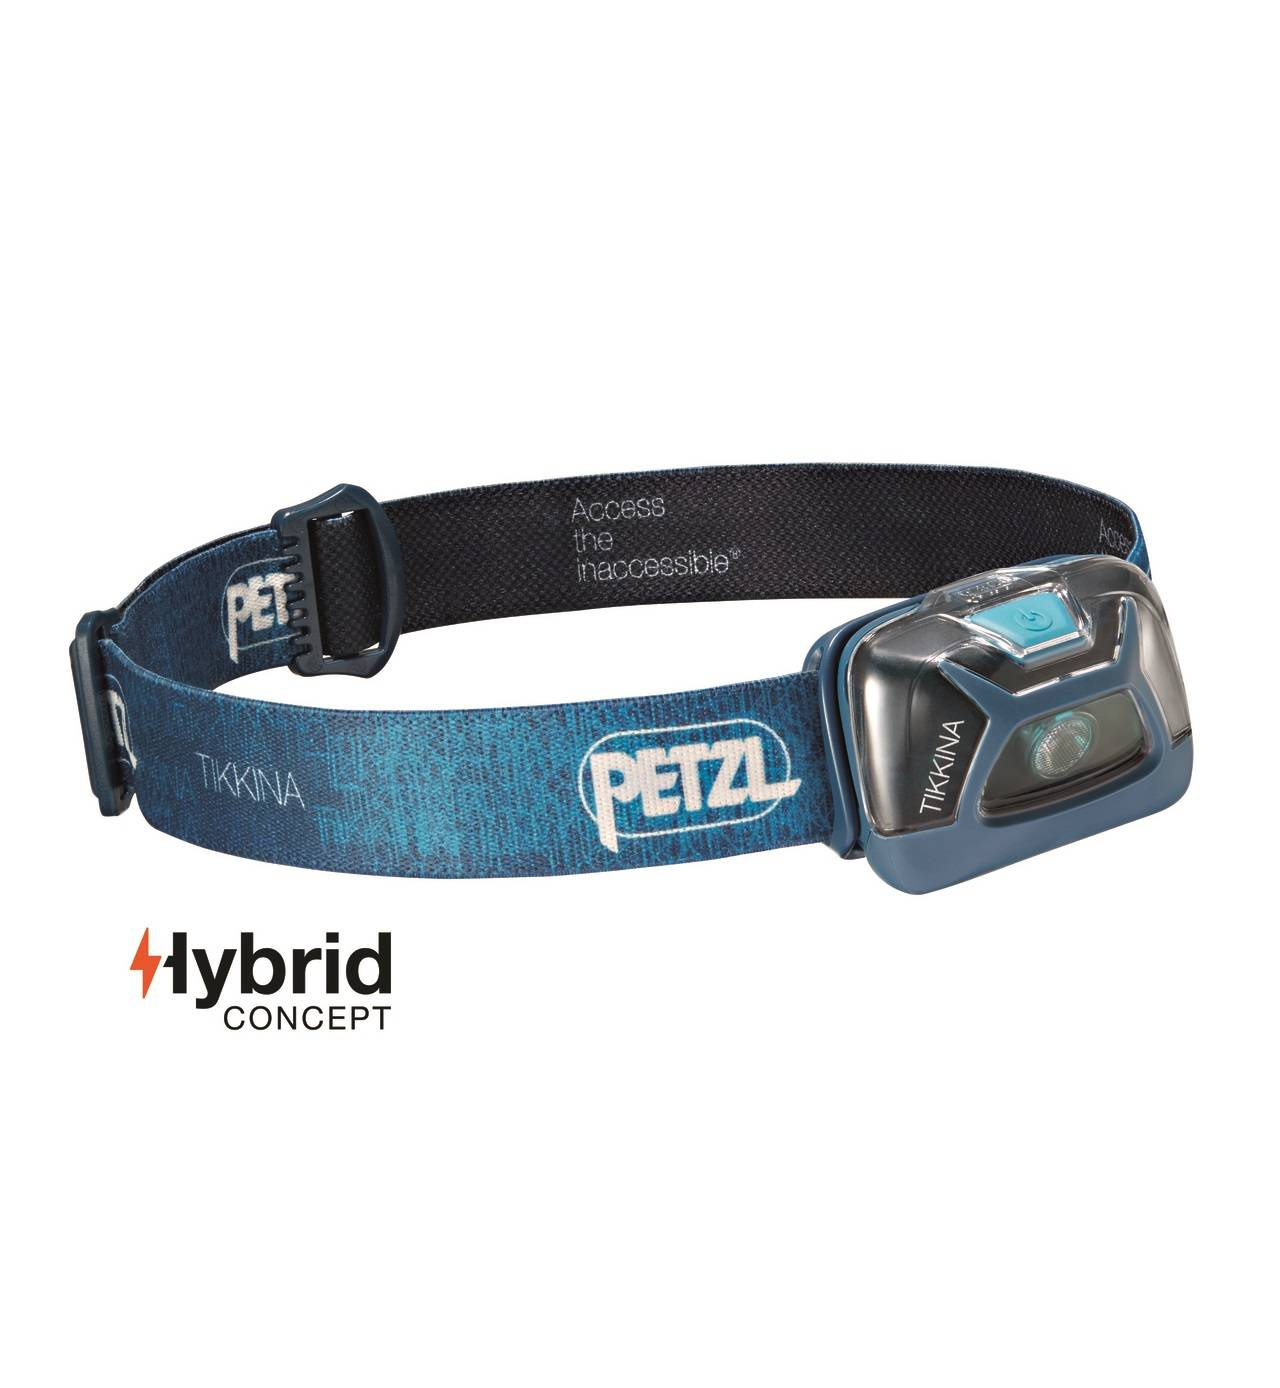 Фонарь налобный Petzl E91ABC Tikkina Standard Lighting 150 Lumens